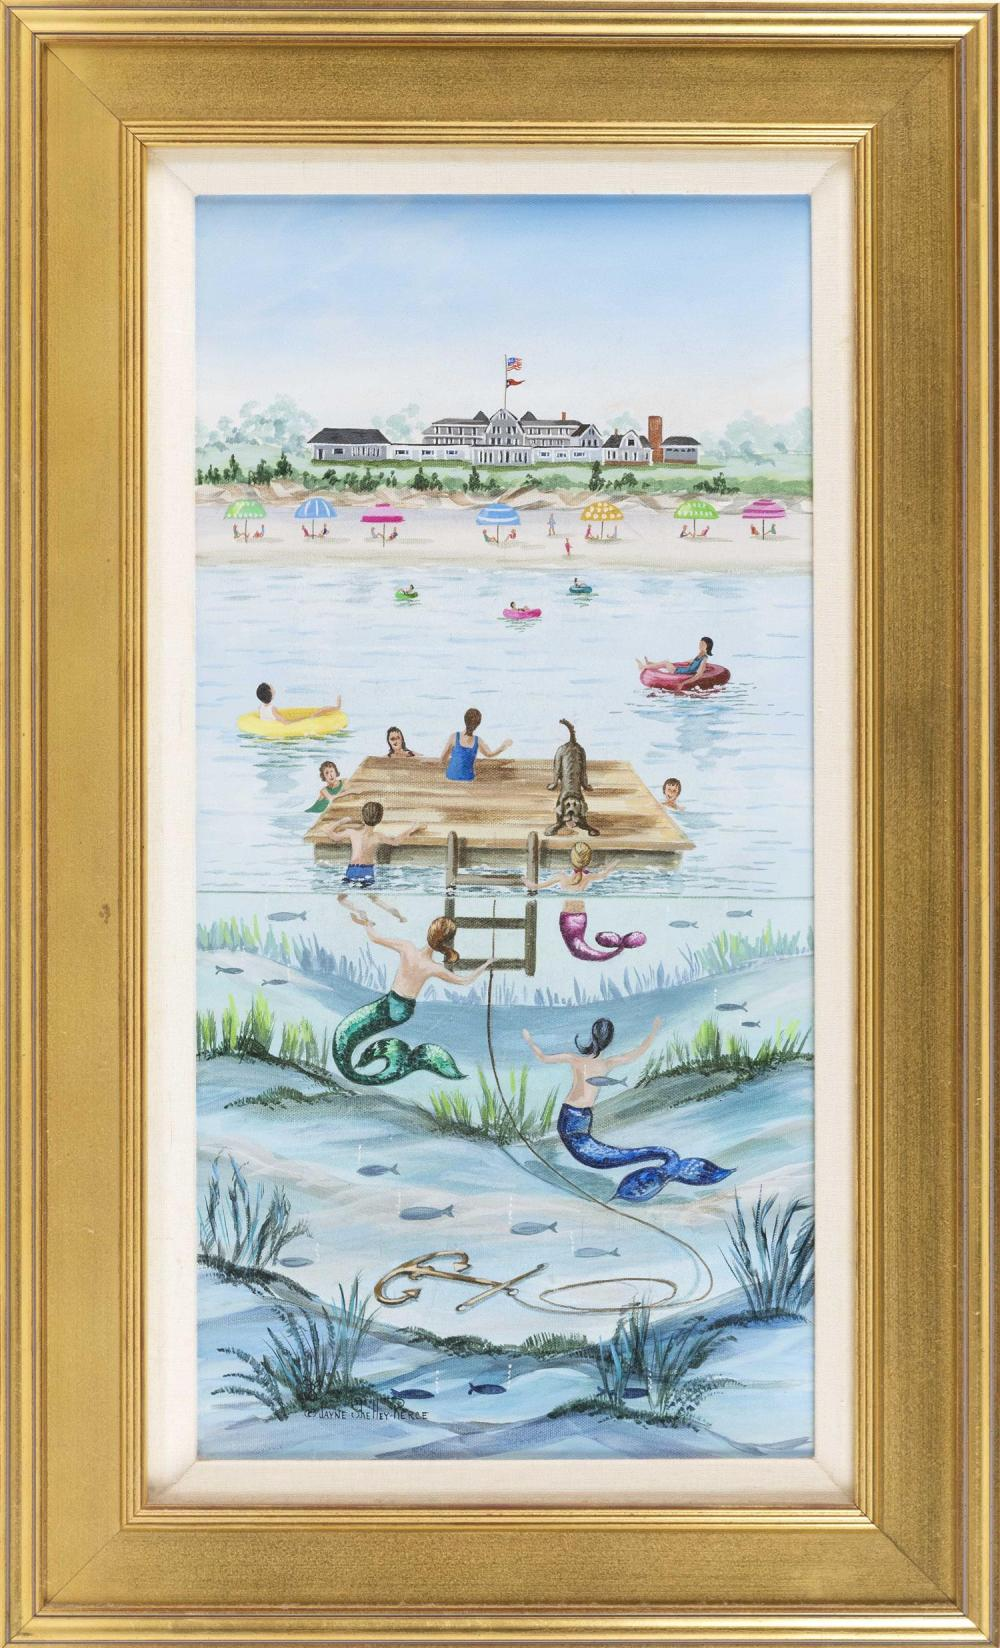 """JAYNE SHELLEY-PIERCE, Cape Cod, Contemporary, """"Wianno Maids""""., Oil on canvas, 24"""" x 12"""". Framed 31"""" x 19""""."""